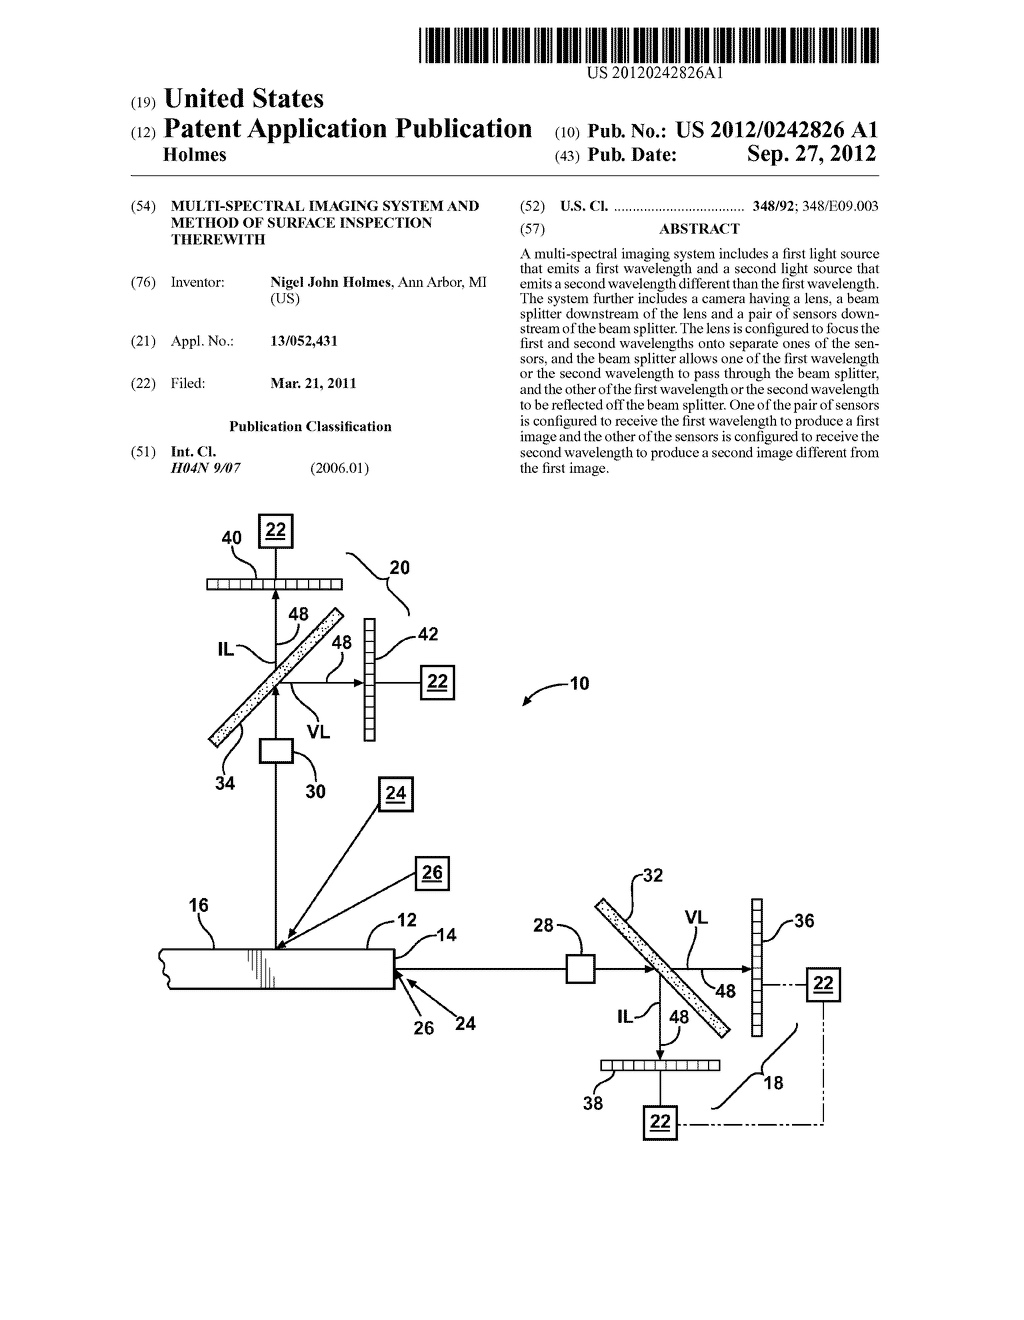 MULTI-SPECTRAL IMAGING SYSTEM AND METHOD OF SURFACE INSPECTION THEREWITH - diagram, schematic, and image 01